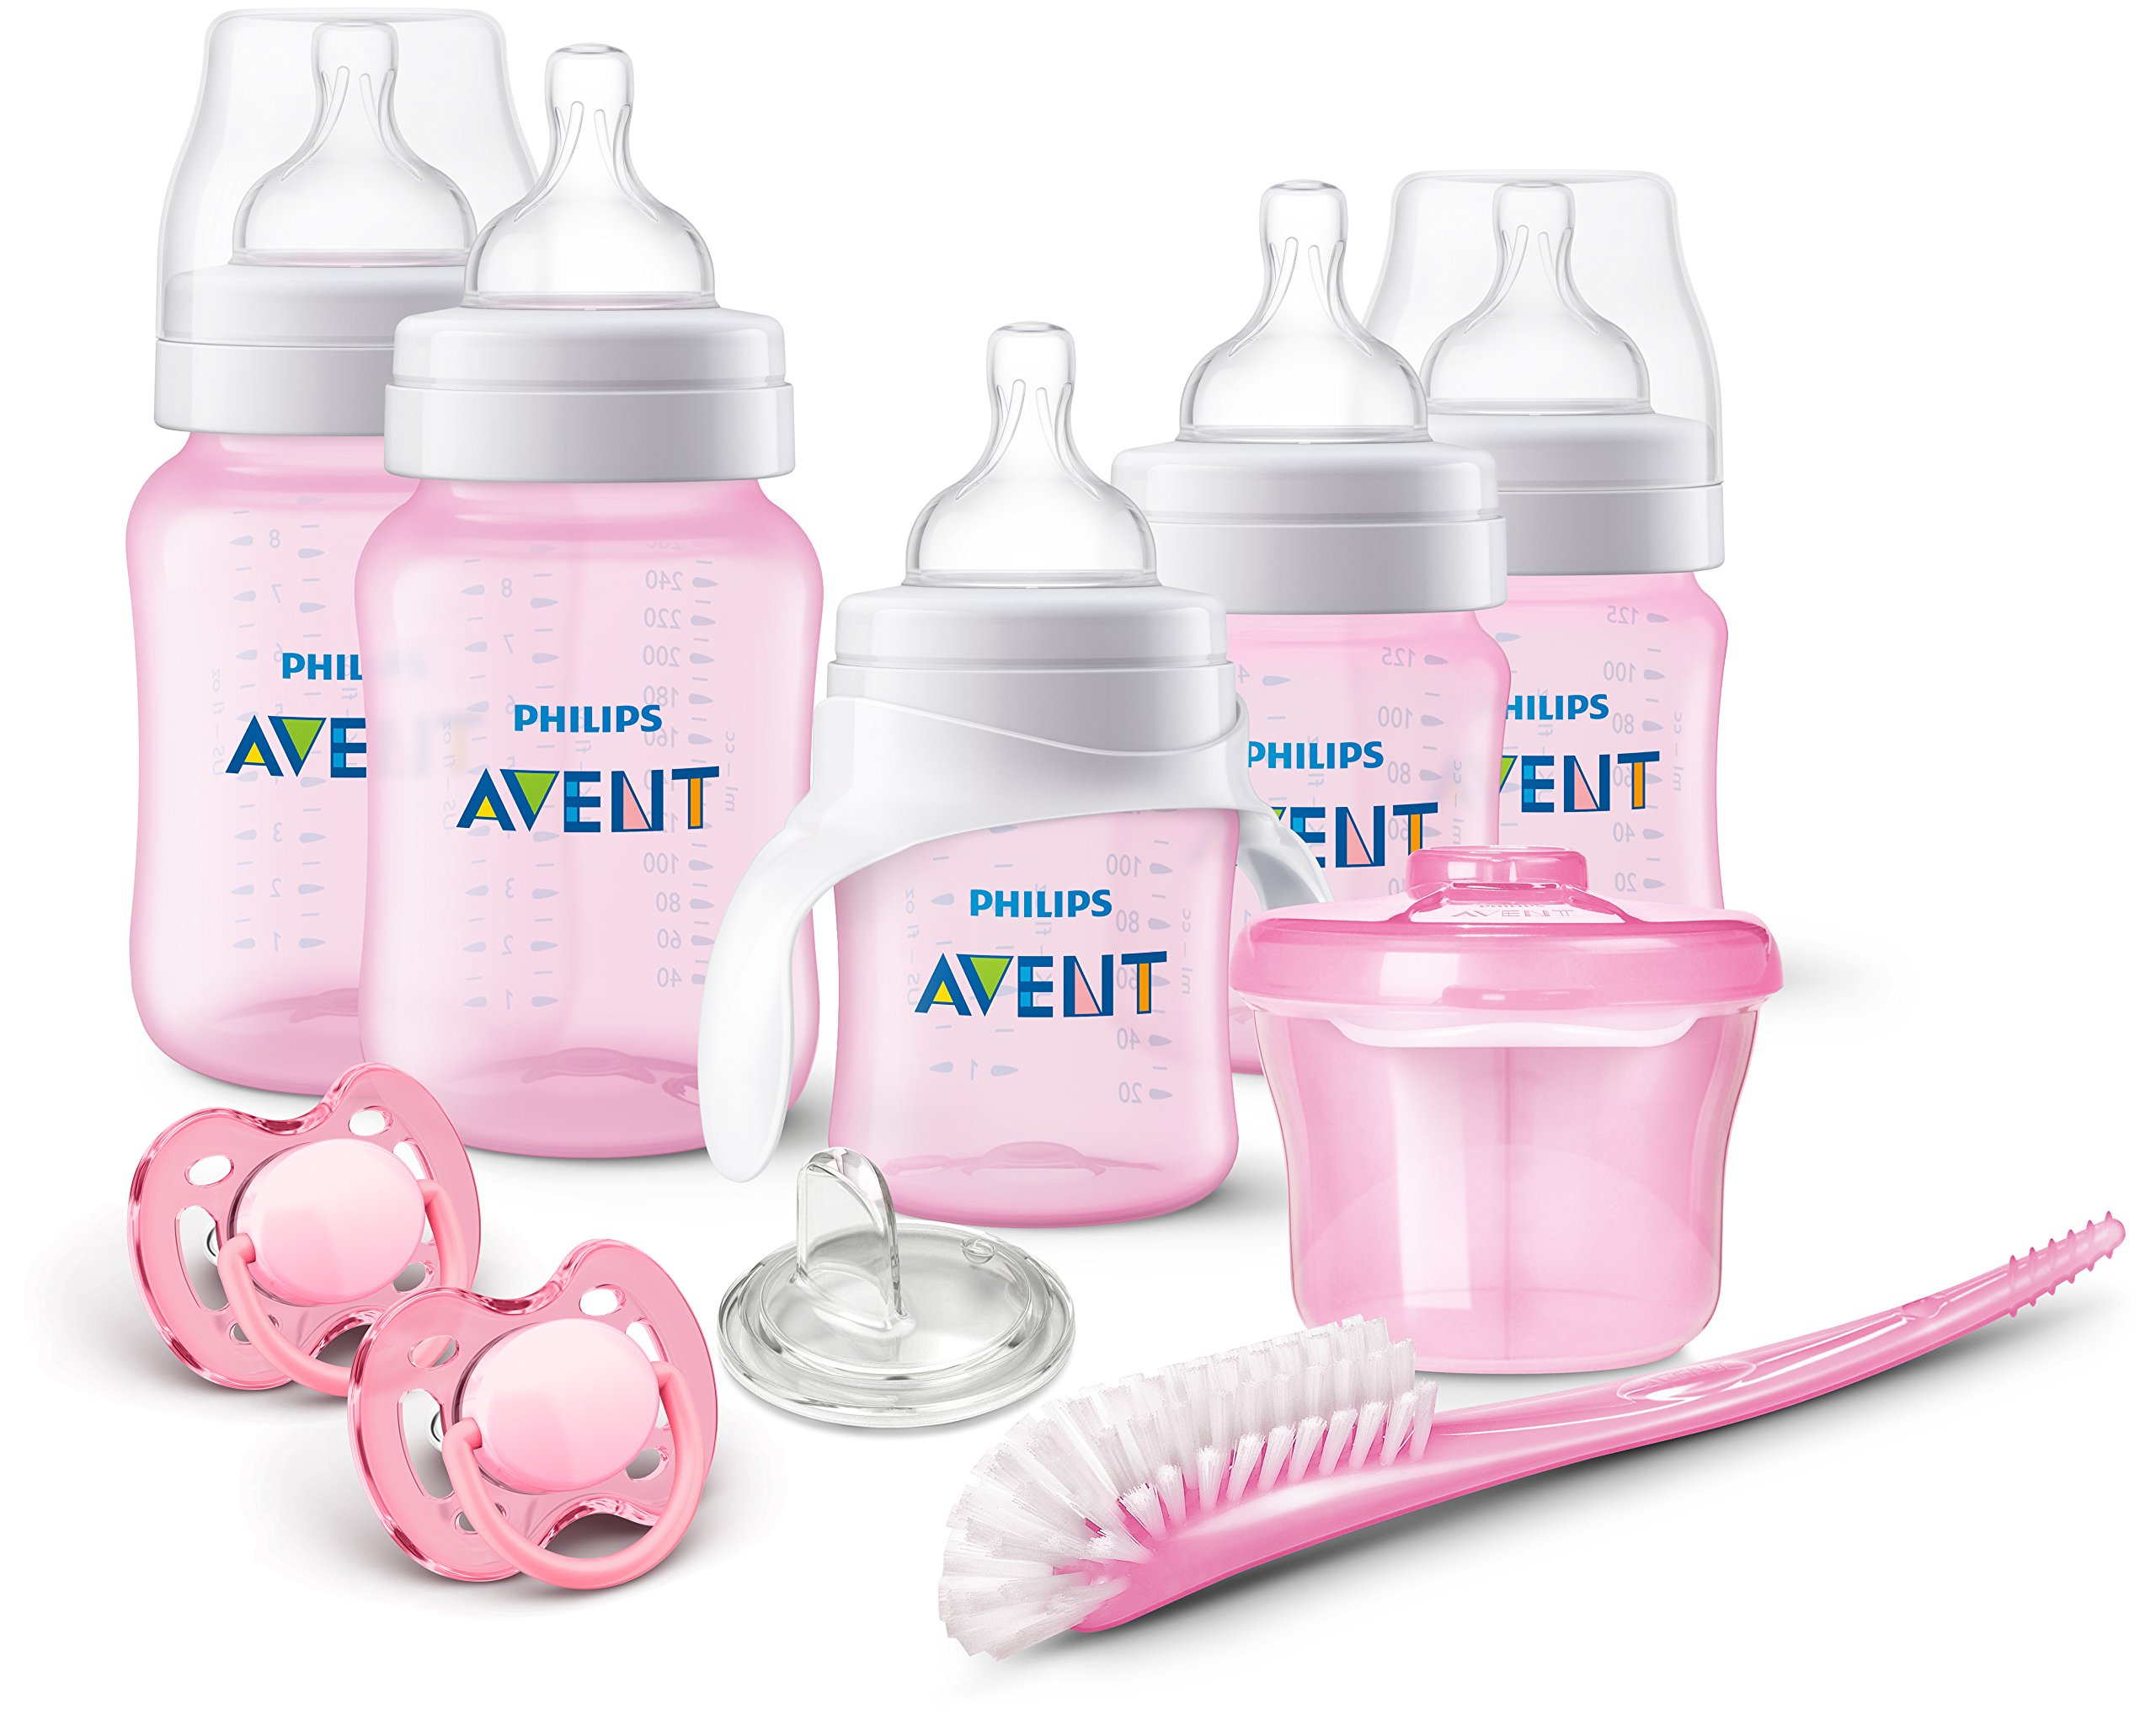 baby bottle anti colic original philips avent ideal newborn starter set pink 758614033135 ebay. Black Bedroom Furniture Sets. Home Design Ideas